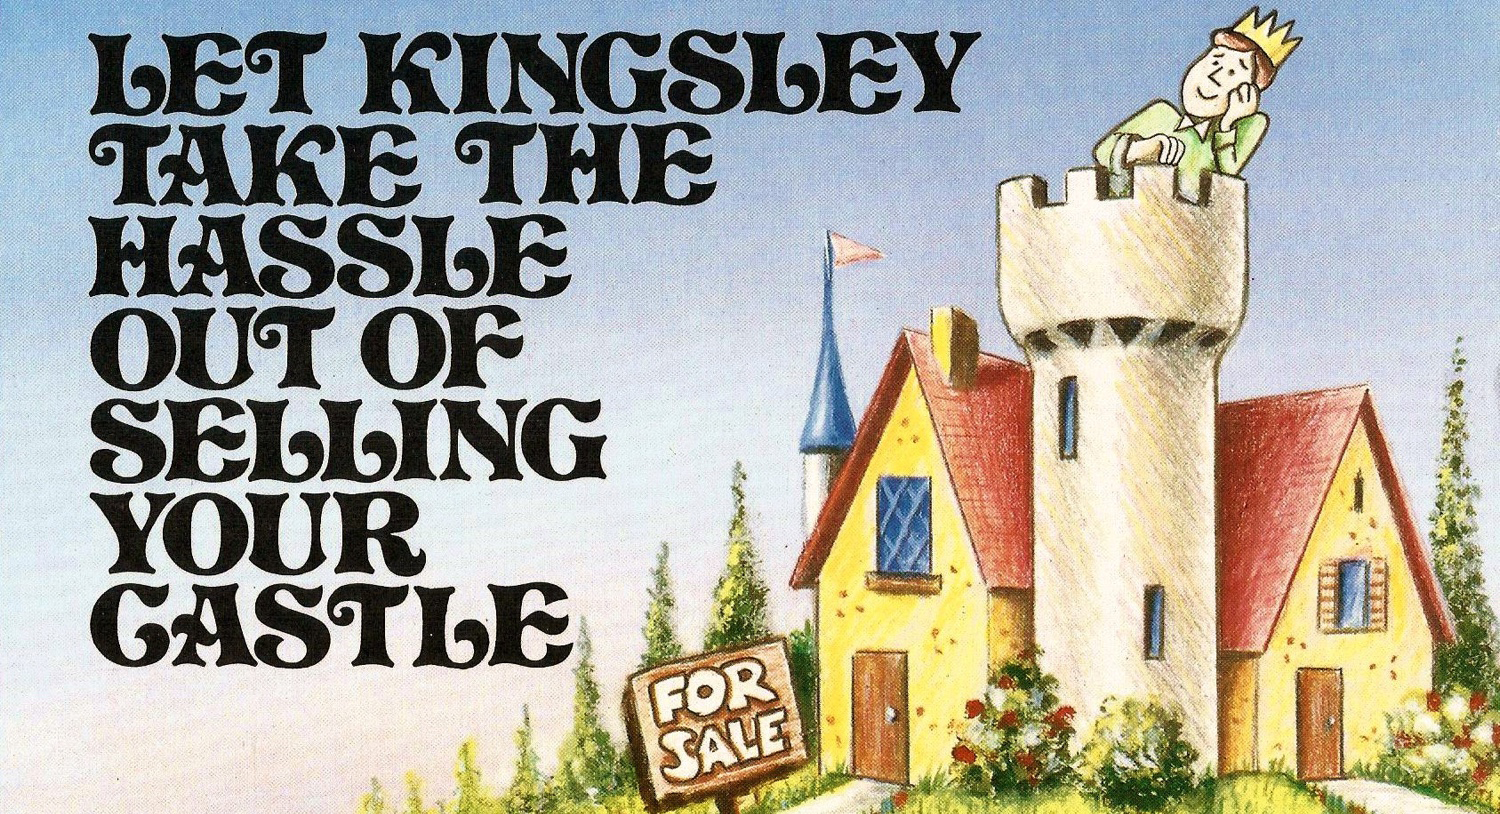 Let Kingsley Take the Hassle Out of Selling Your Castle -- Sari Kingsley Real Estate, LTD. Call Now For a FREE Right Price Analysis 718-667-1800